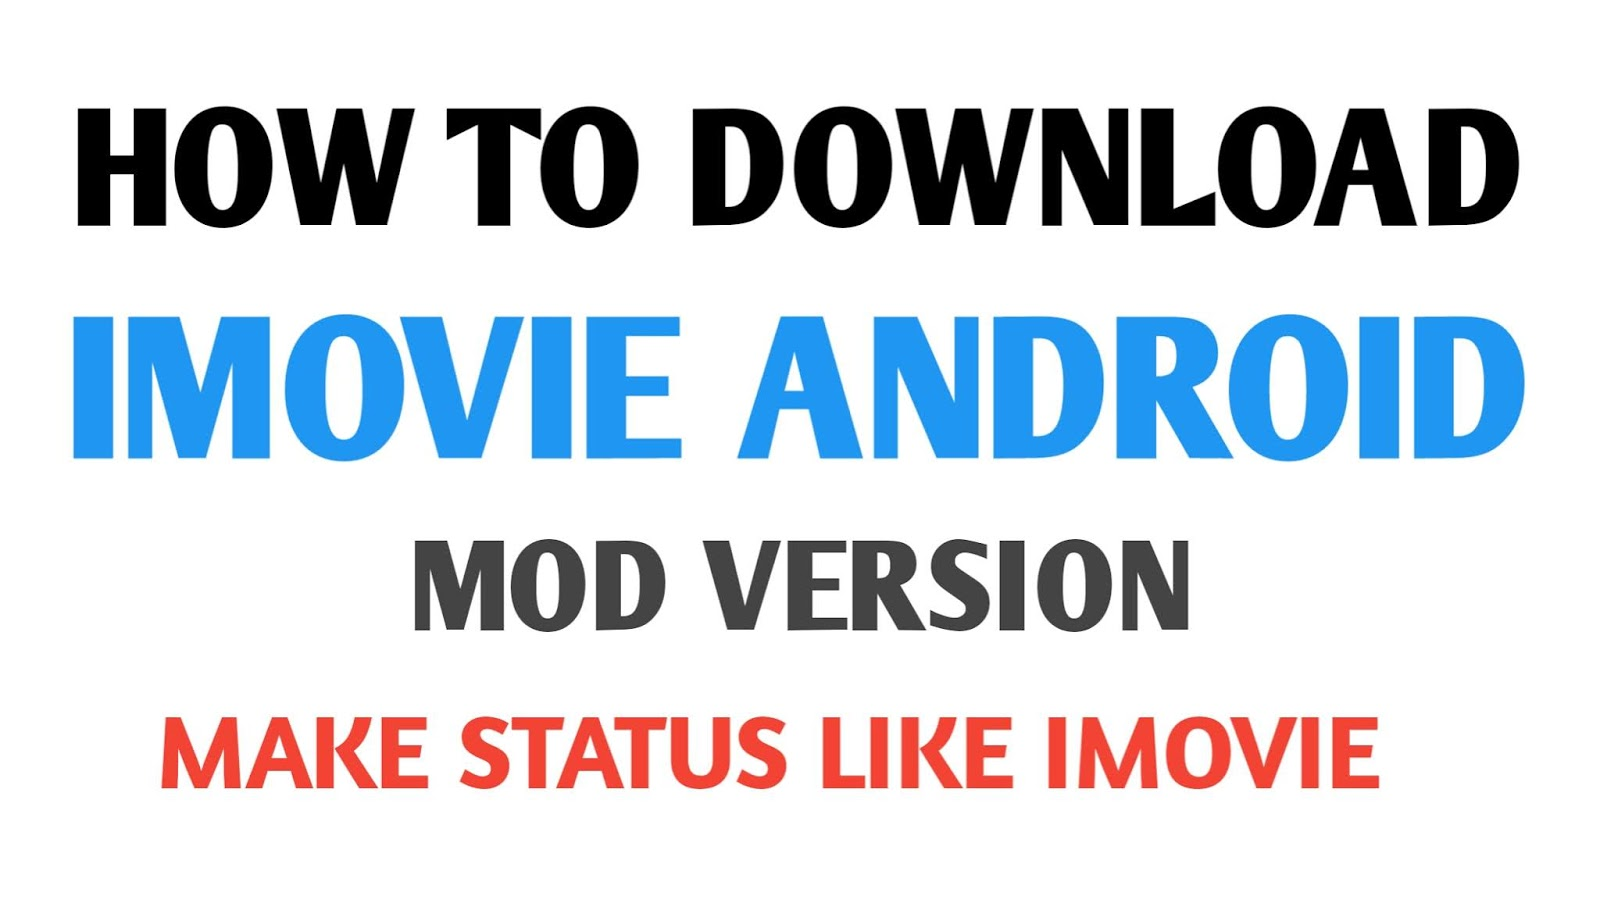 тεcнησ vкαү: IMOVIE STATUS MAKE ANDROID